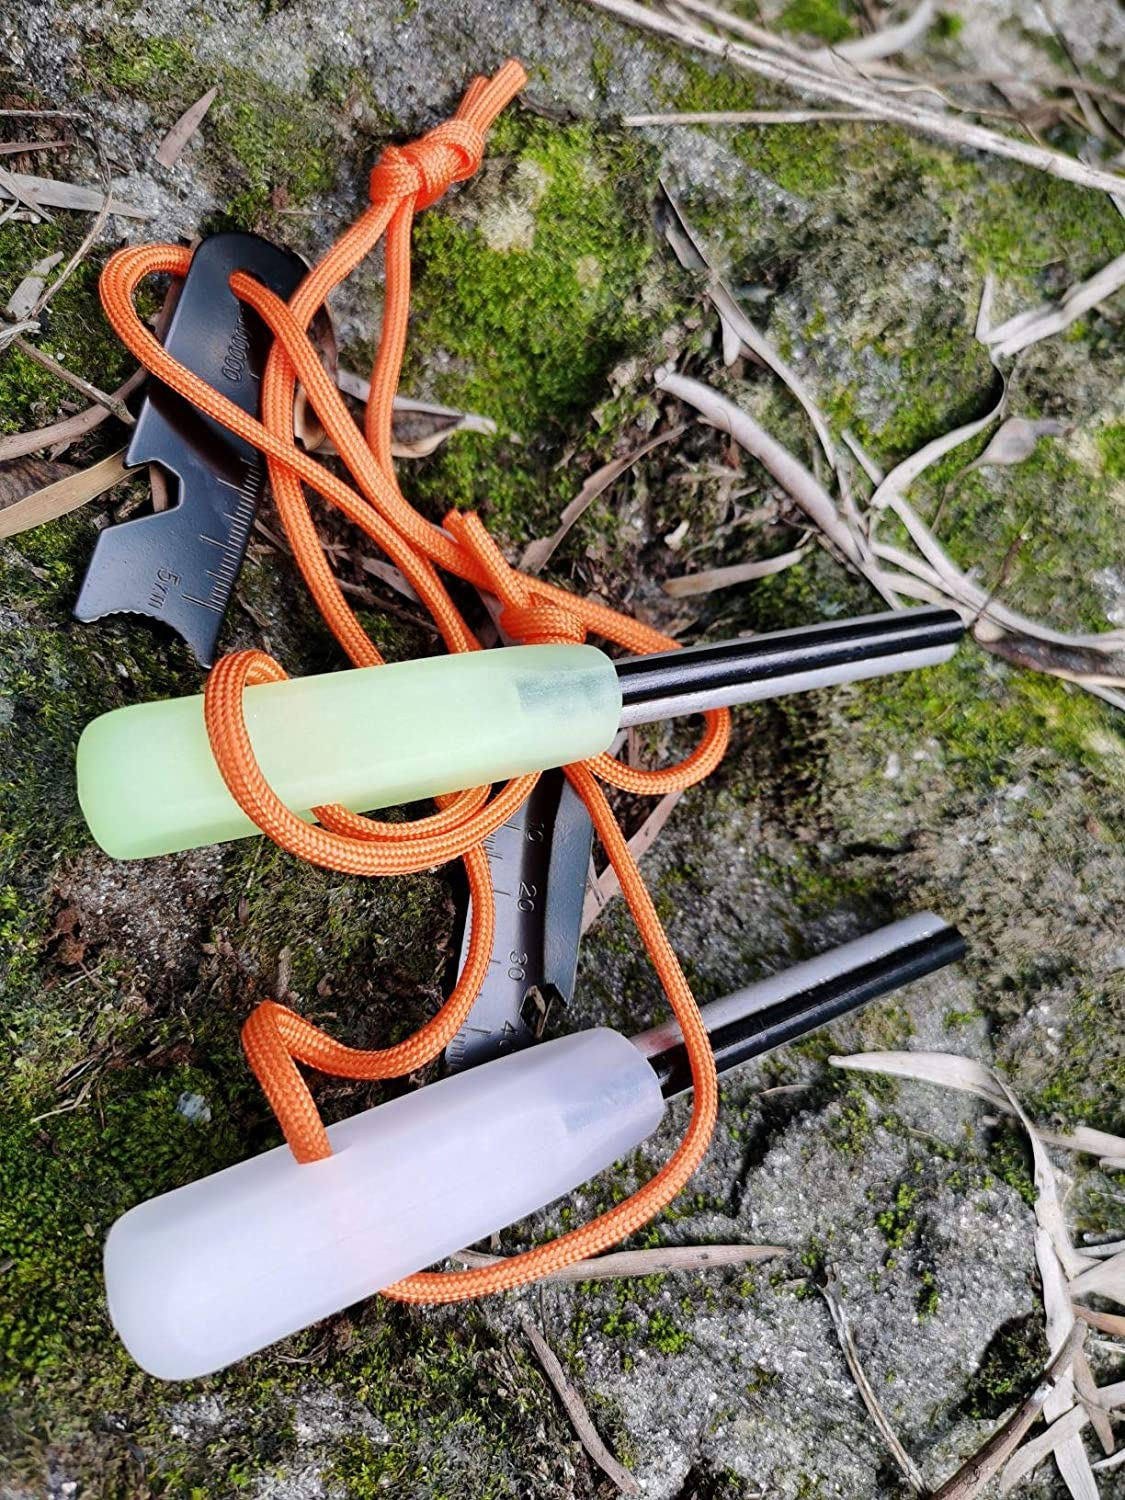 Hiking Hunting Backpacking Camping Emergency Fire Starter White and Glow in The Dark FOSTAR Outdoors 2PCS Magnesium Rod Ferro rods Great for Bushcraft Camping